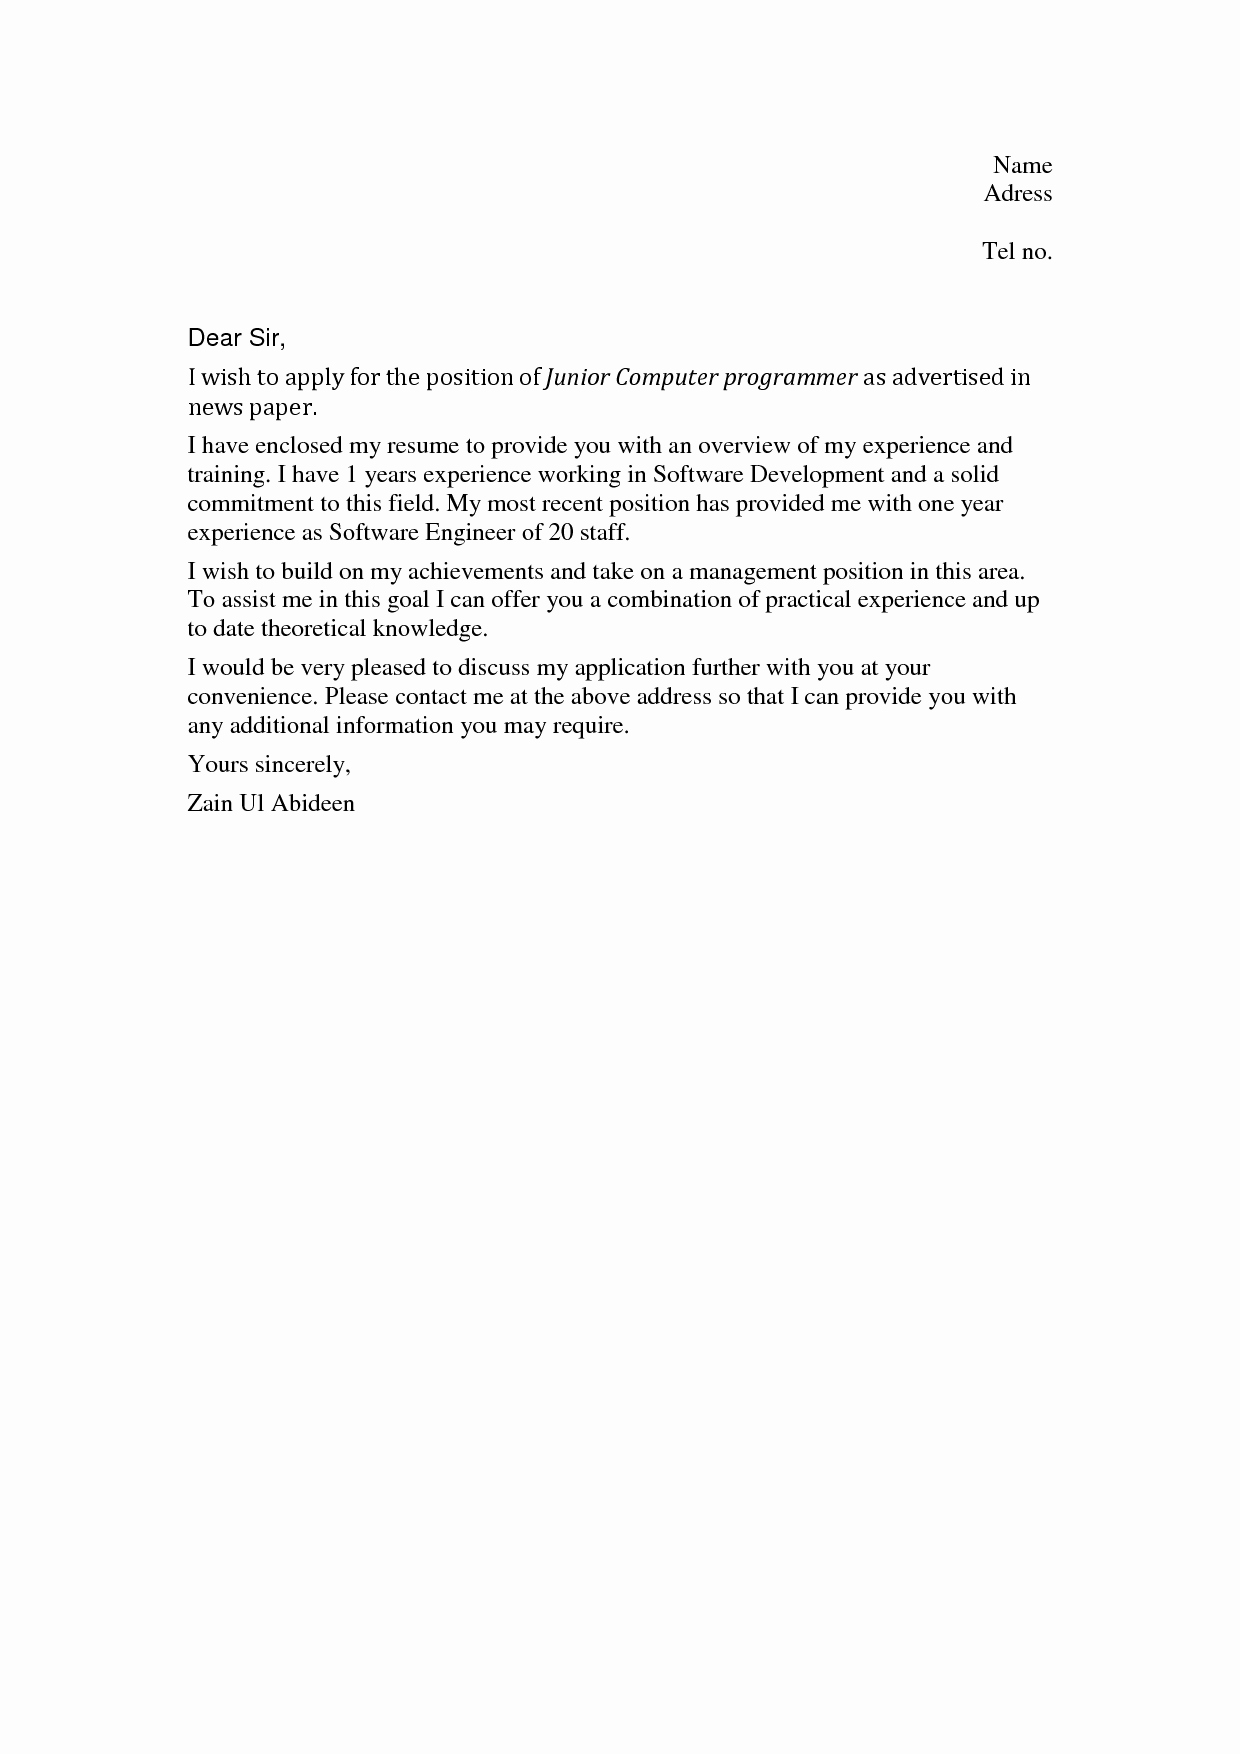 Job Cover Letter Sample Awesome Cover Letter Sample No Work Experience Cover Letter